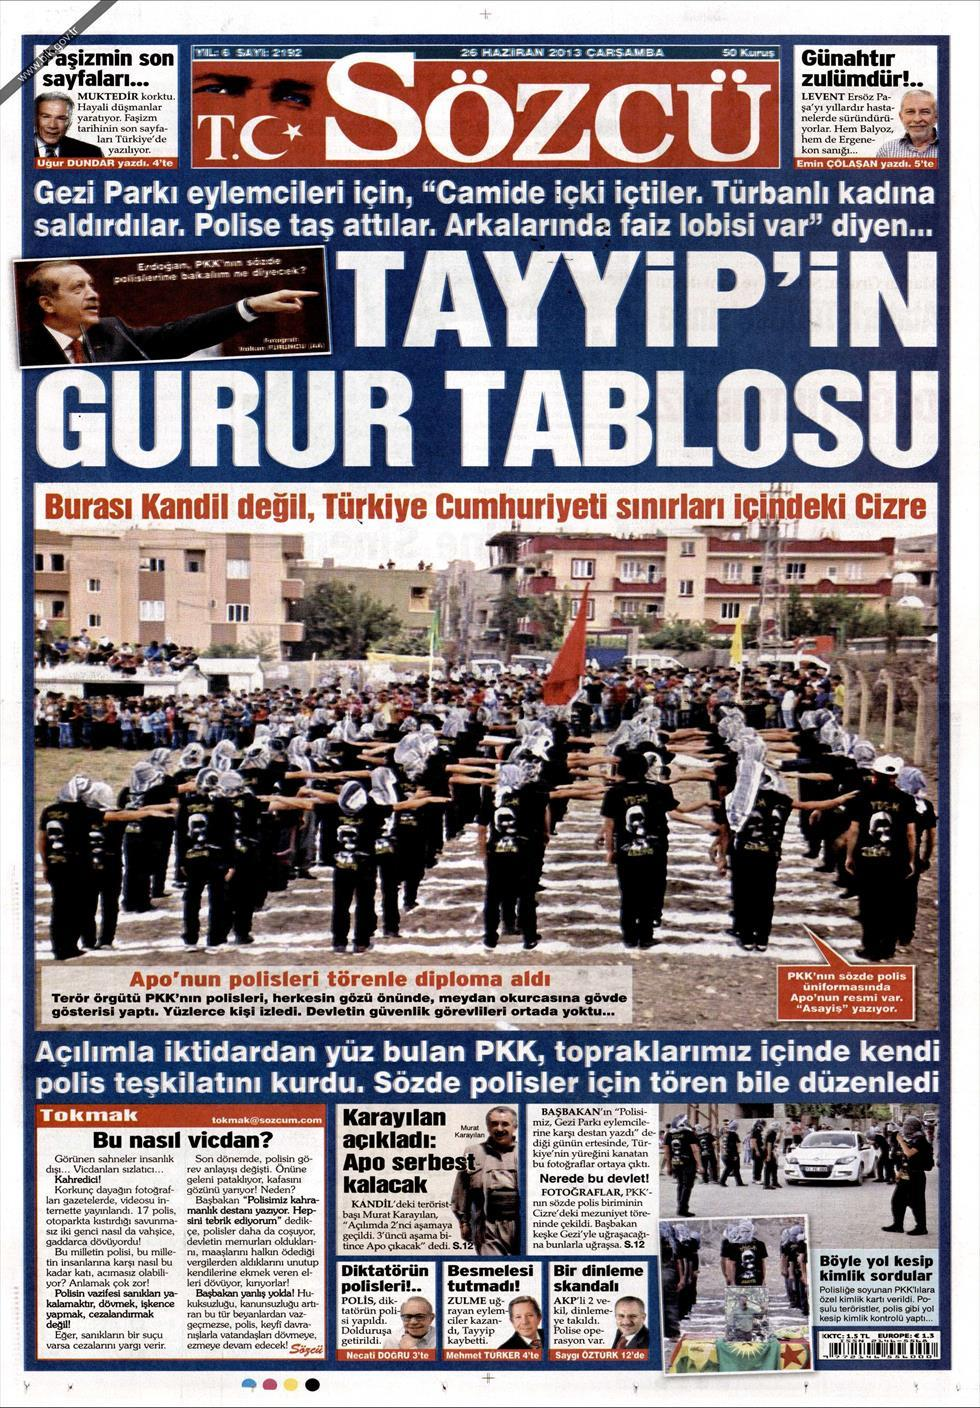 Claims of PKK police force formed in Turkey